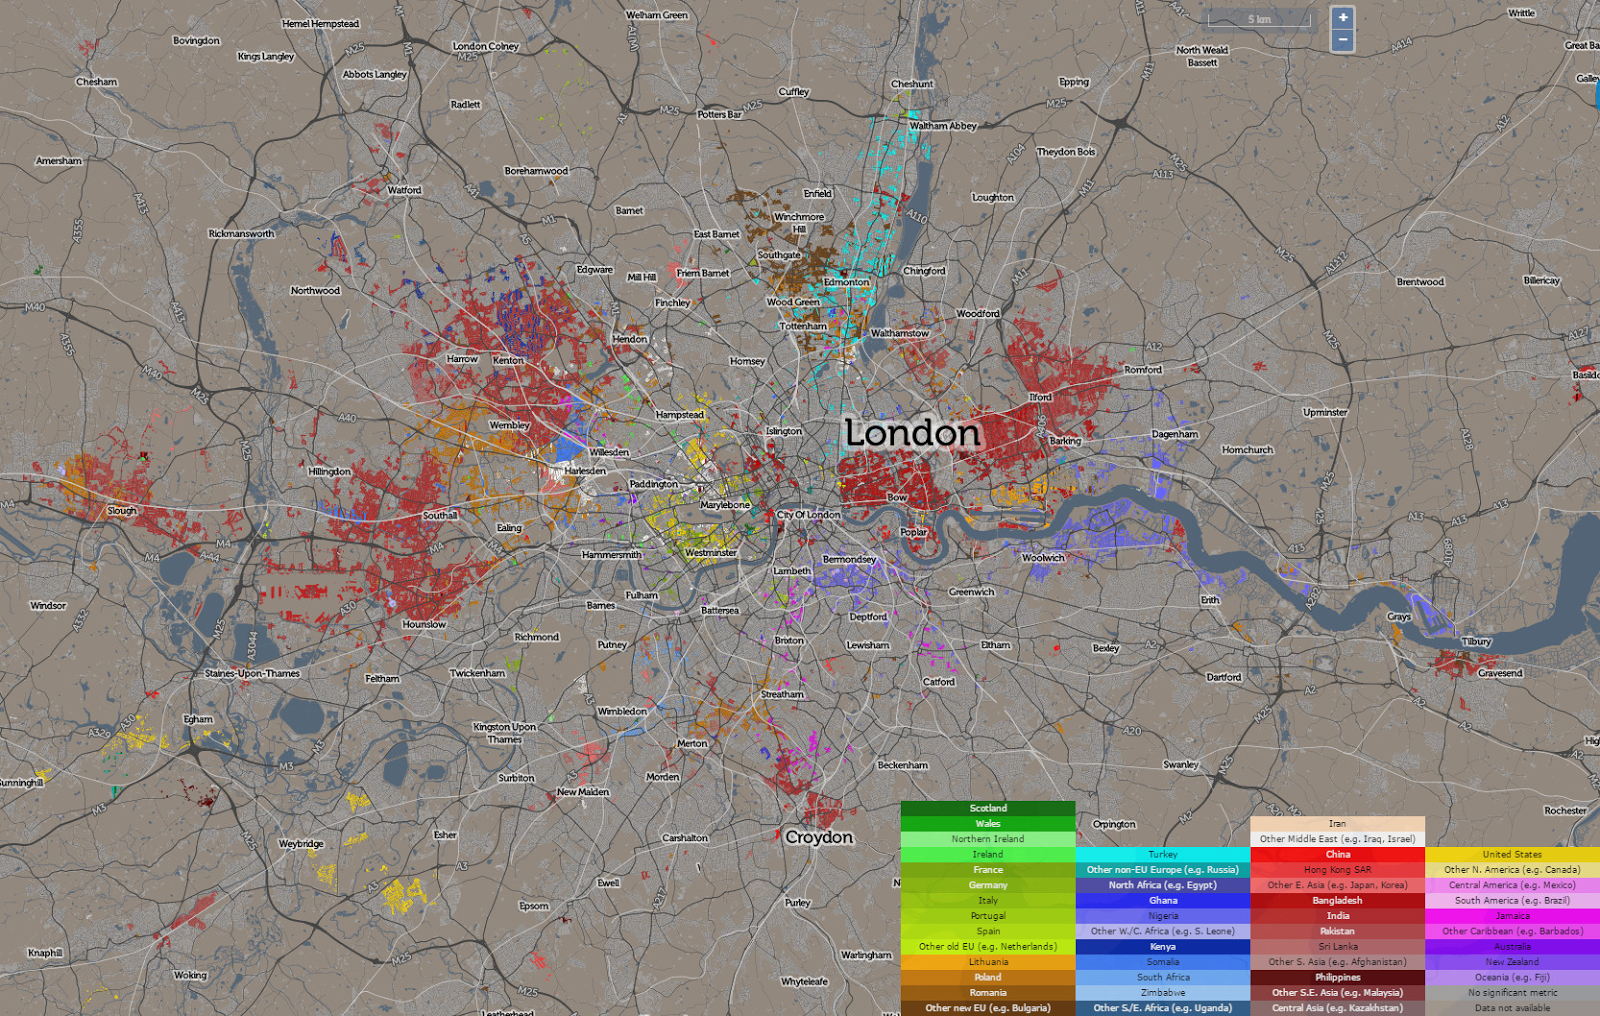 Mapping where immigrants settle in London